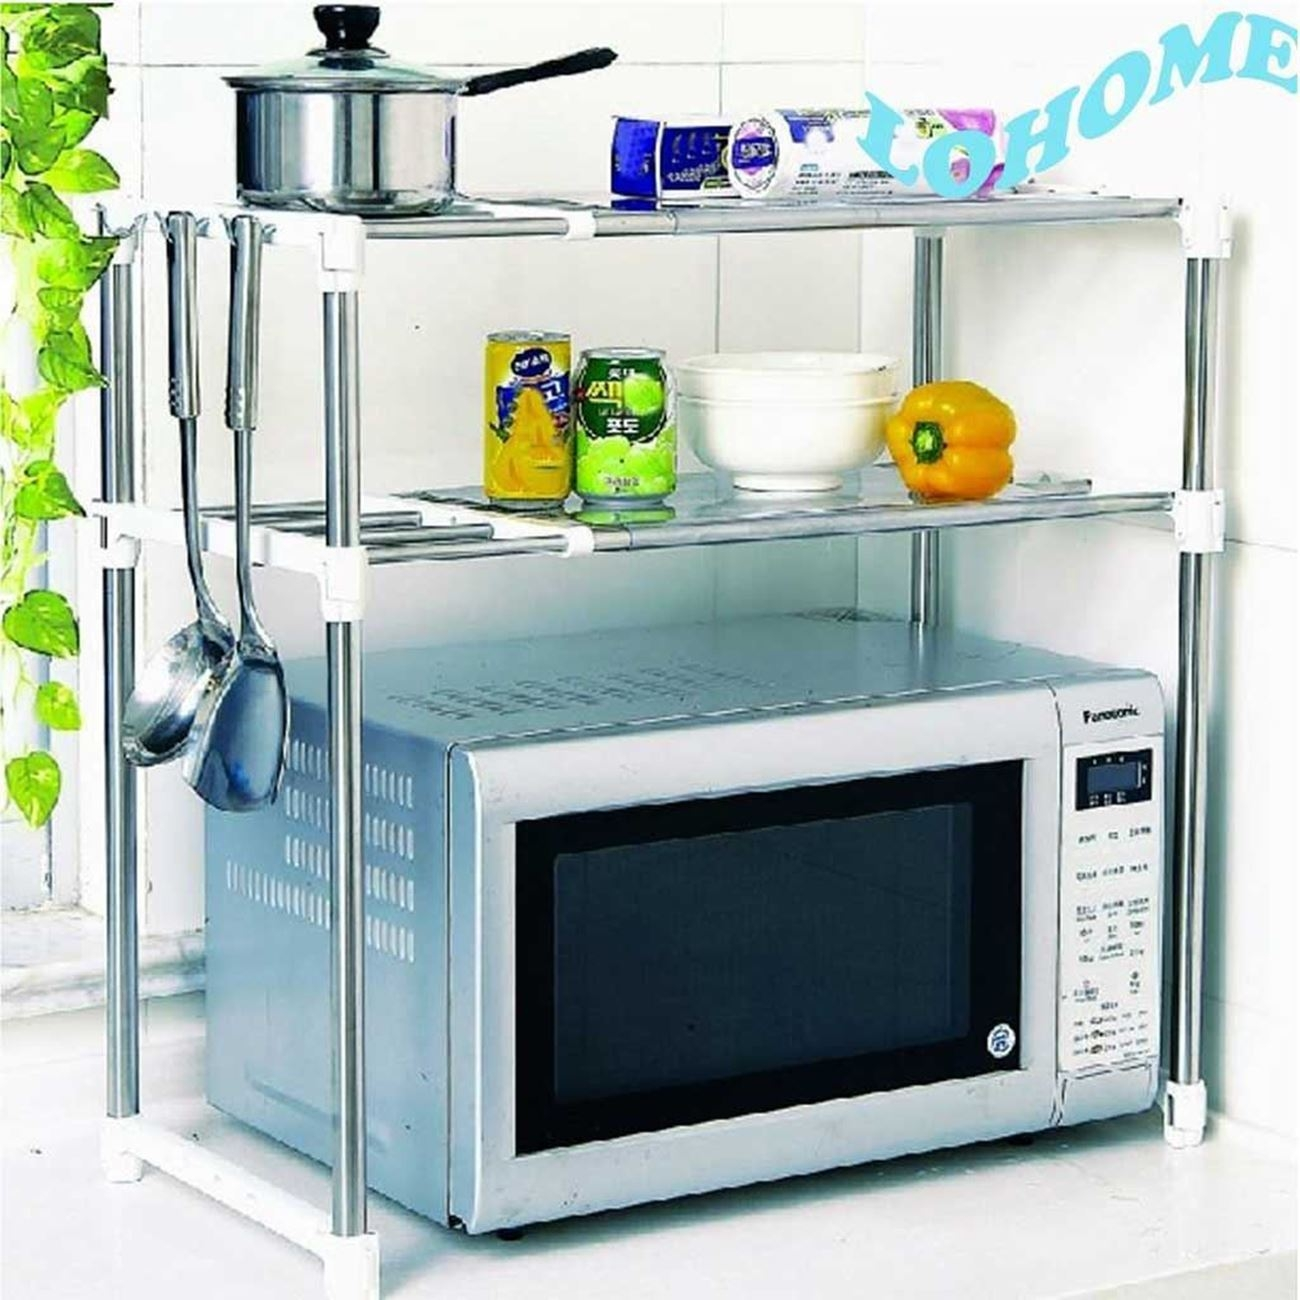 LOHOME (TM) Double Design Stainless Steel Microwave Oven Rack  Multi Function Kitchen Shelves